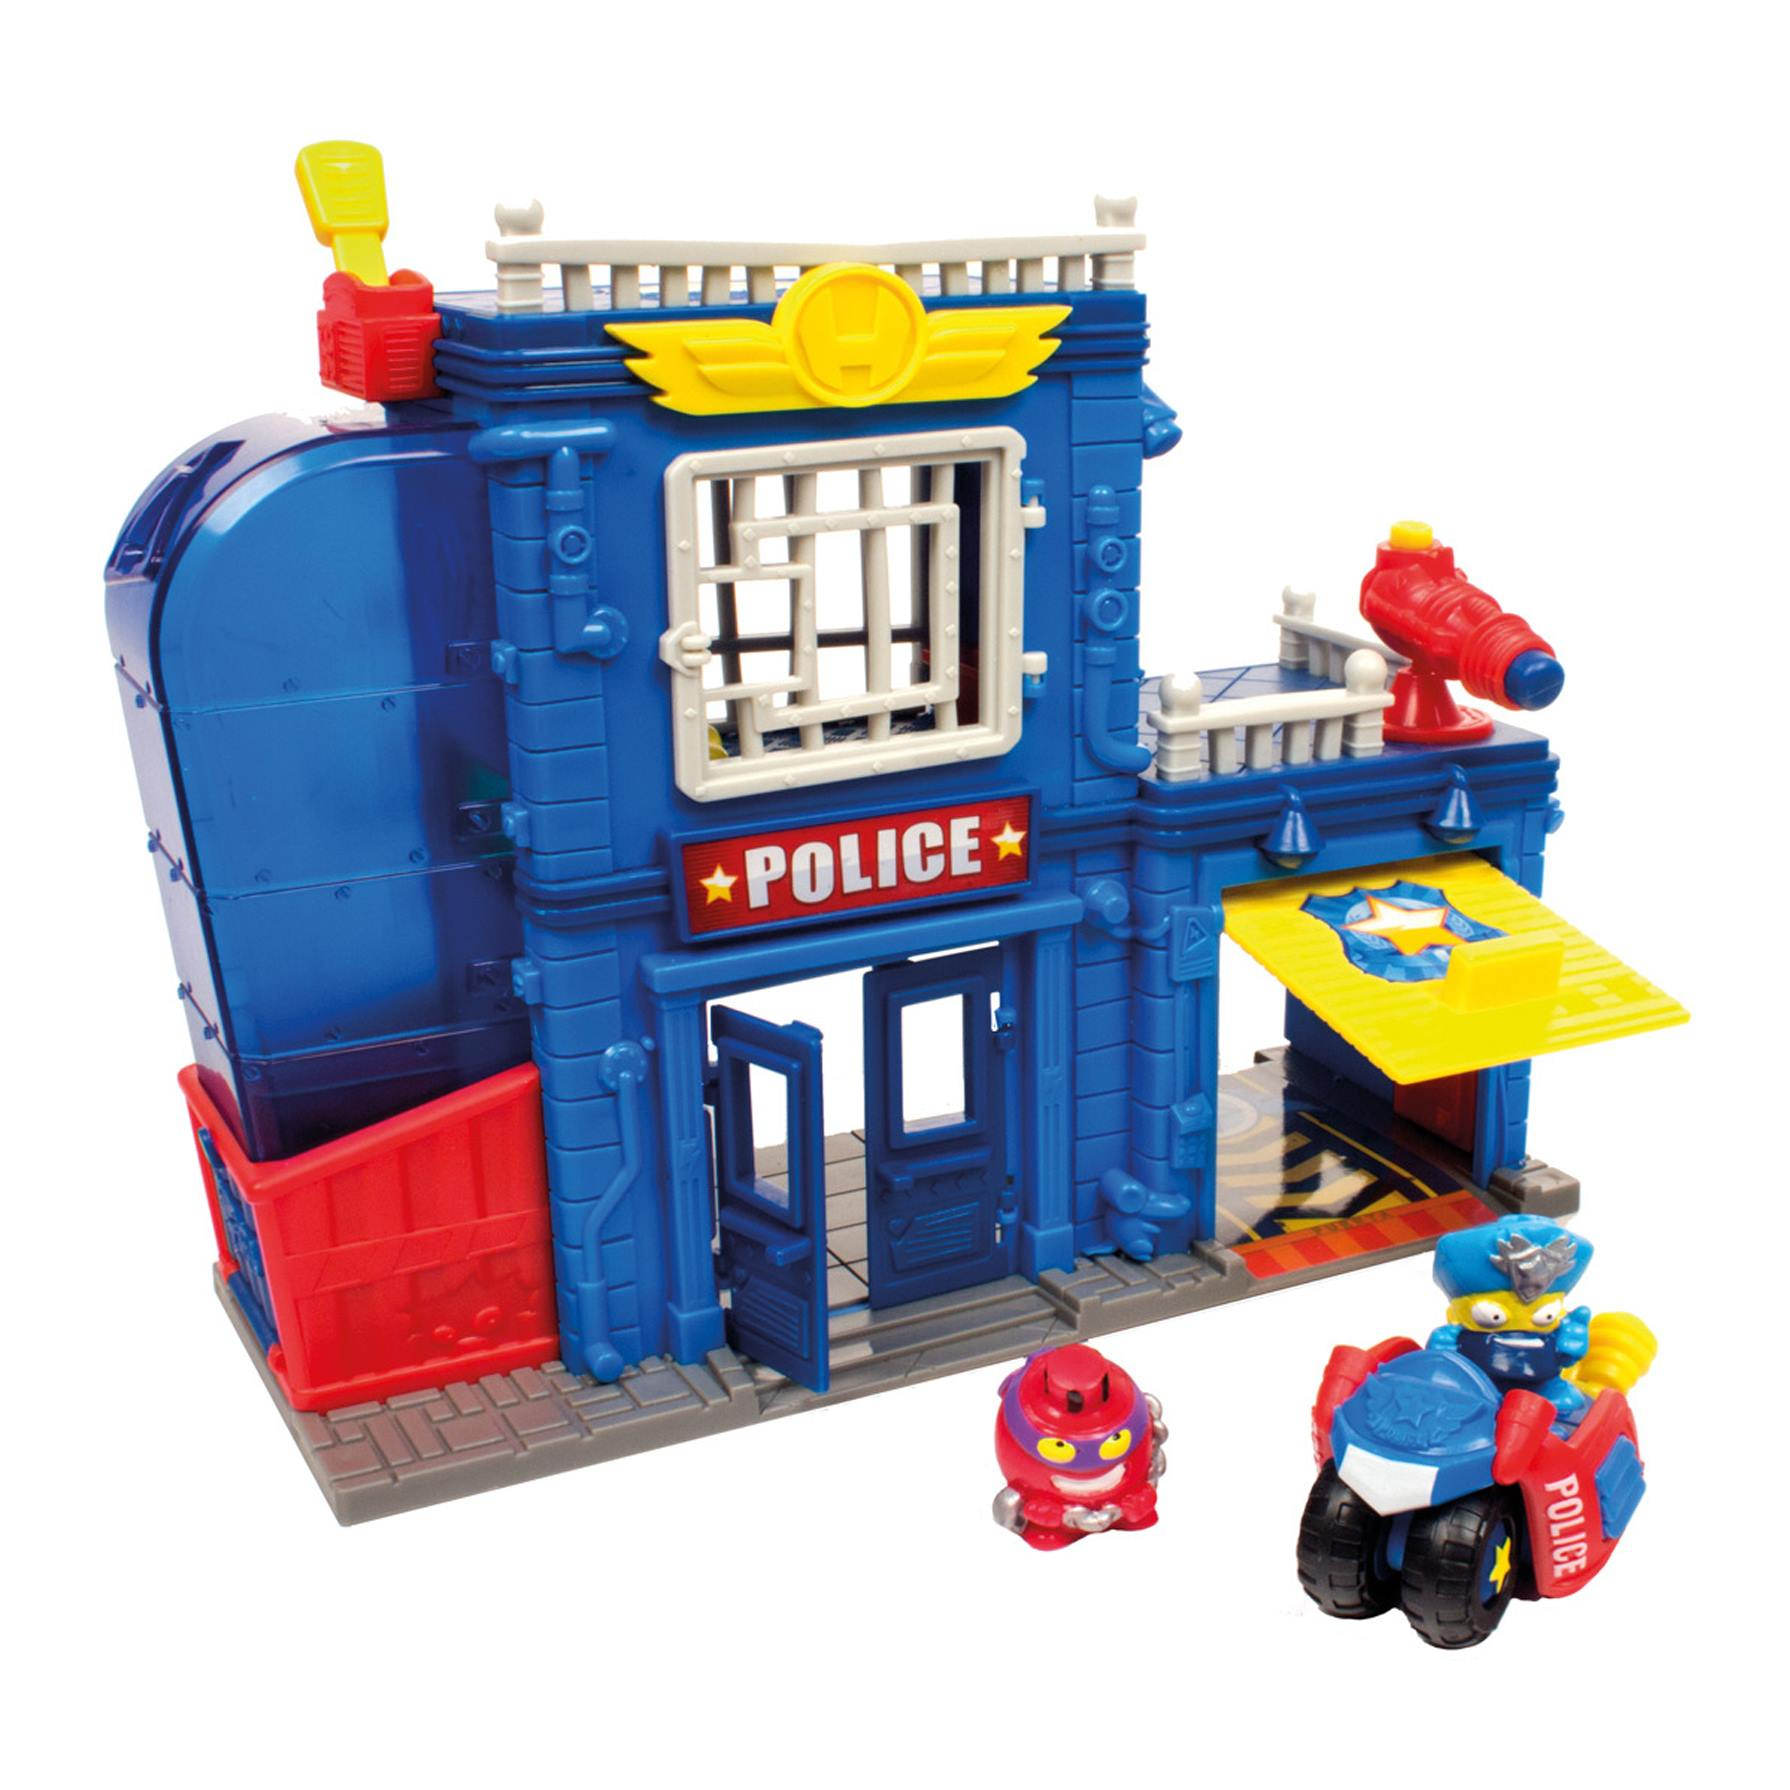 Superzings Playset Police Station